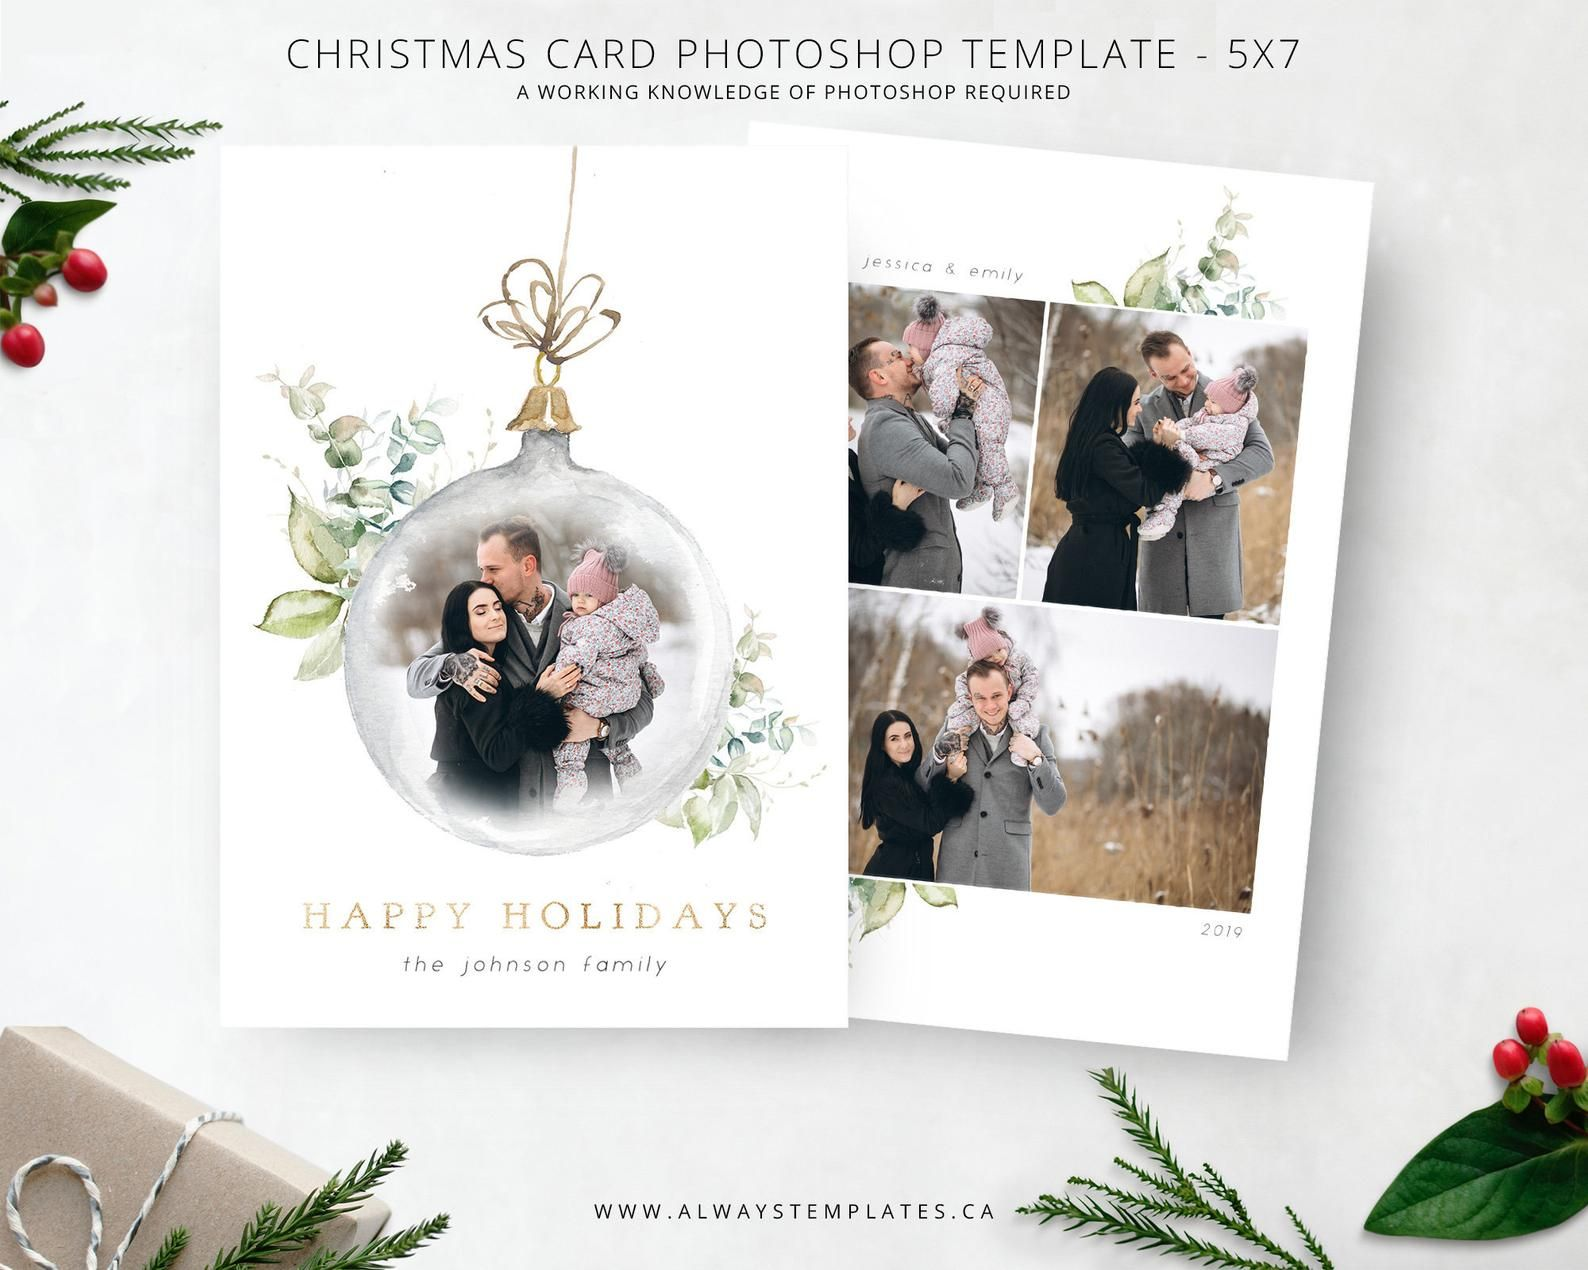 Christmas Card Template Holiday Card Template Photo Etsy In 2021 Holiday Card Template Christmas Card Template Christmas Card Photoshop